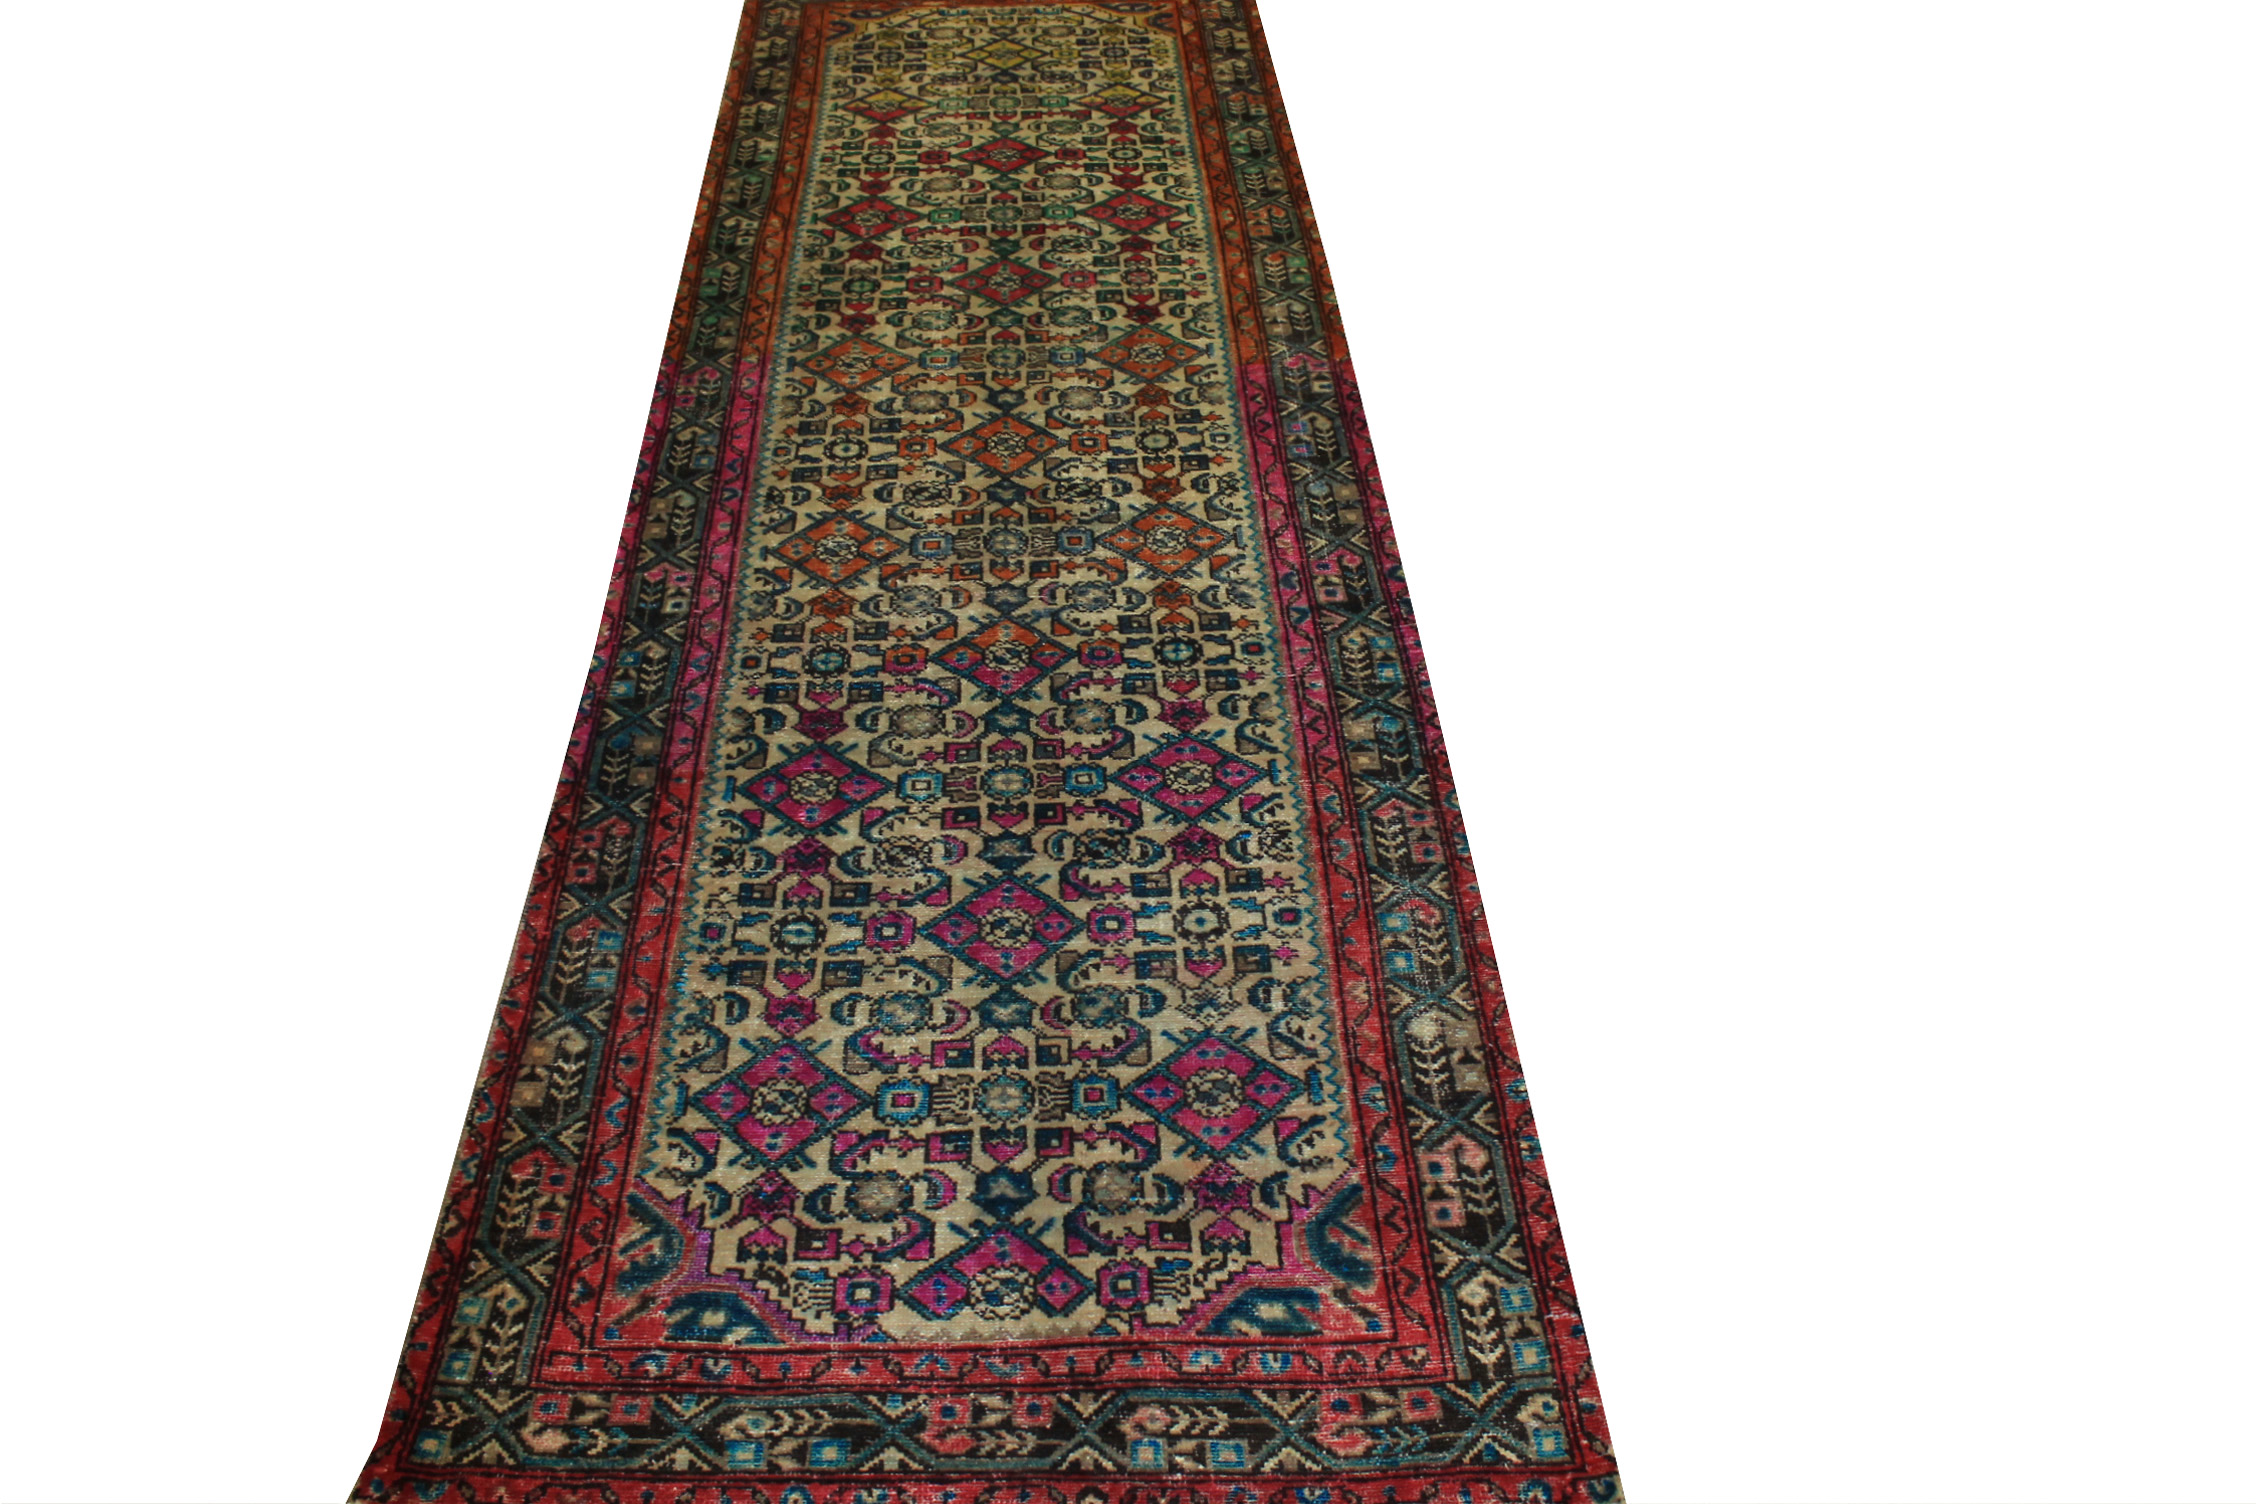 10 ft. Runner Vintage Hand Knotted Wool Area Rug - MR024452